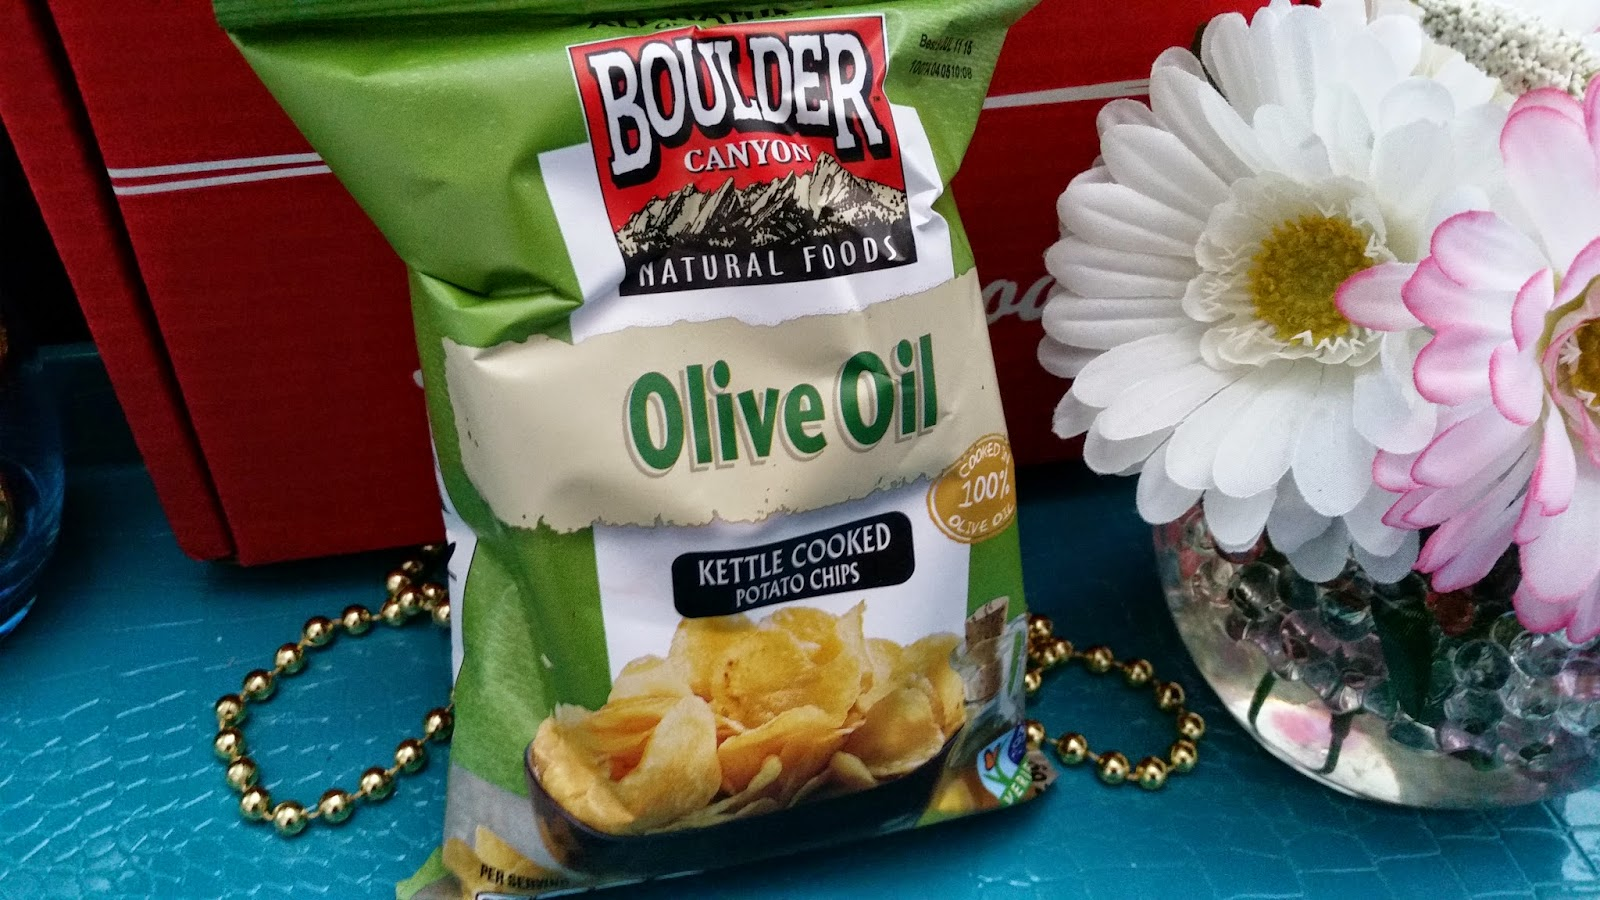 Boulder Canyon Olive Oil Potato Chips